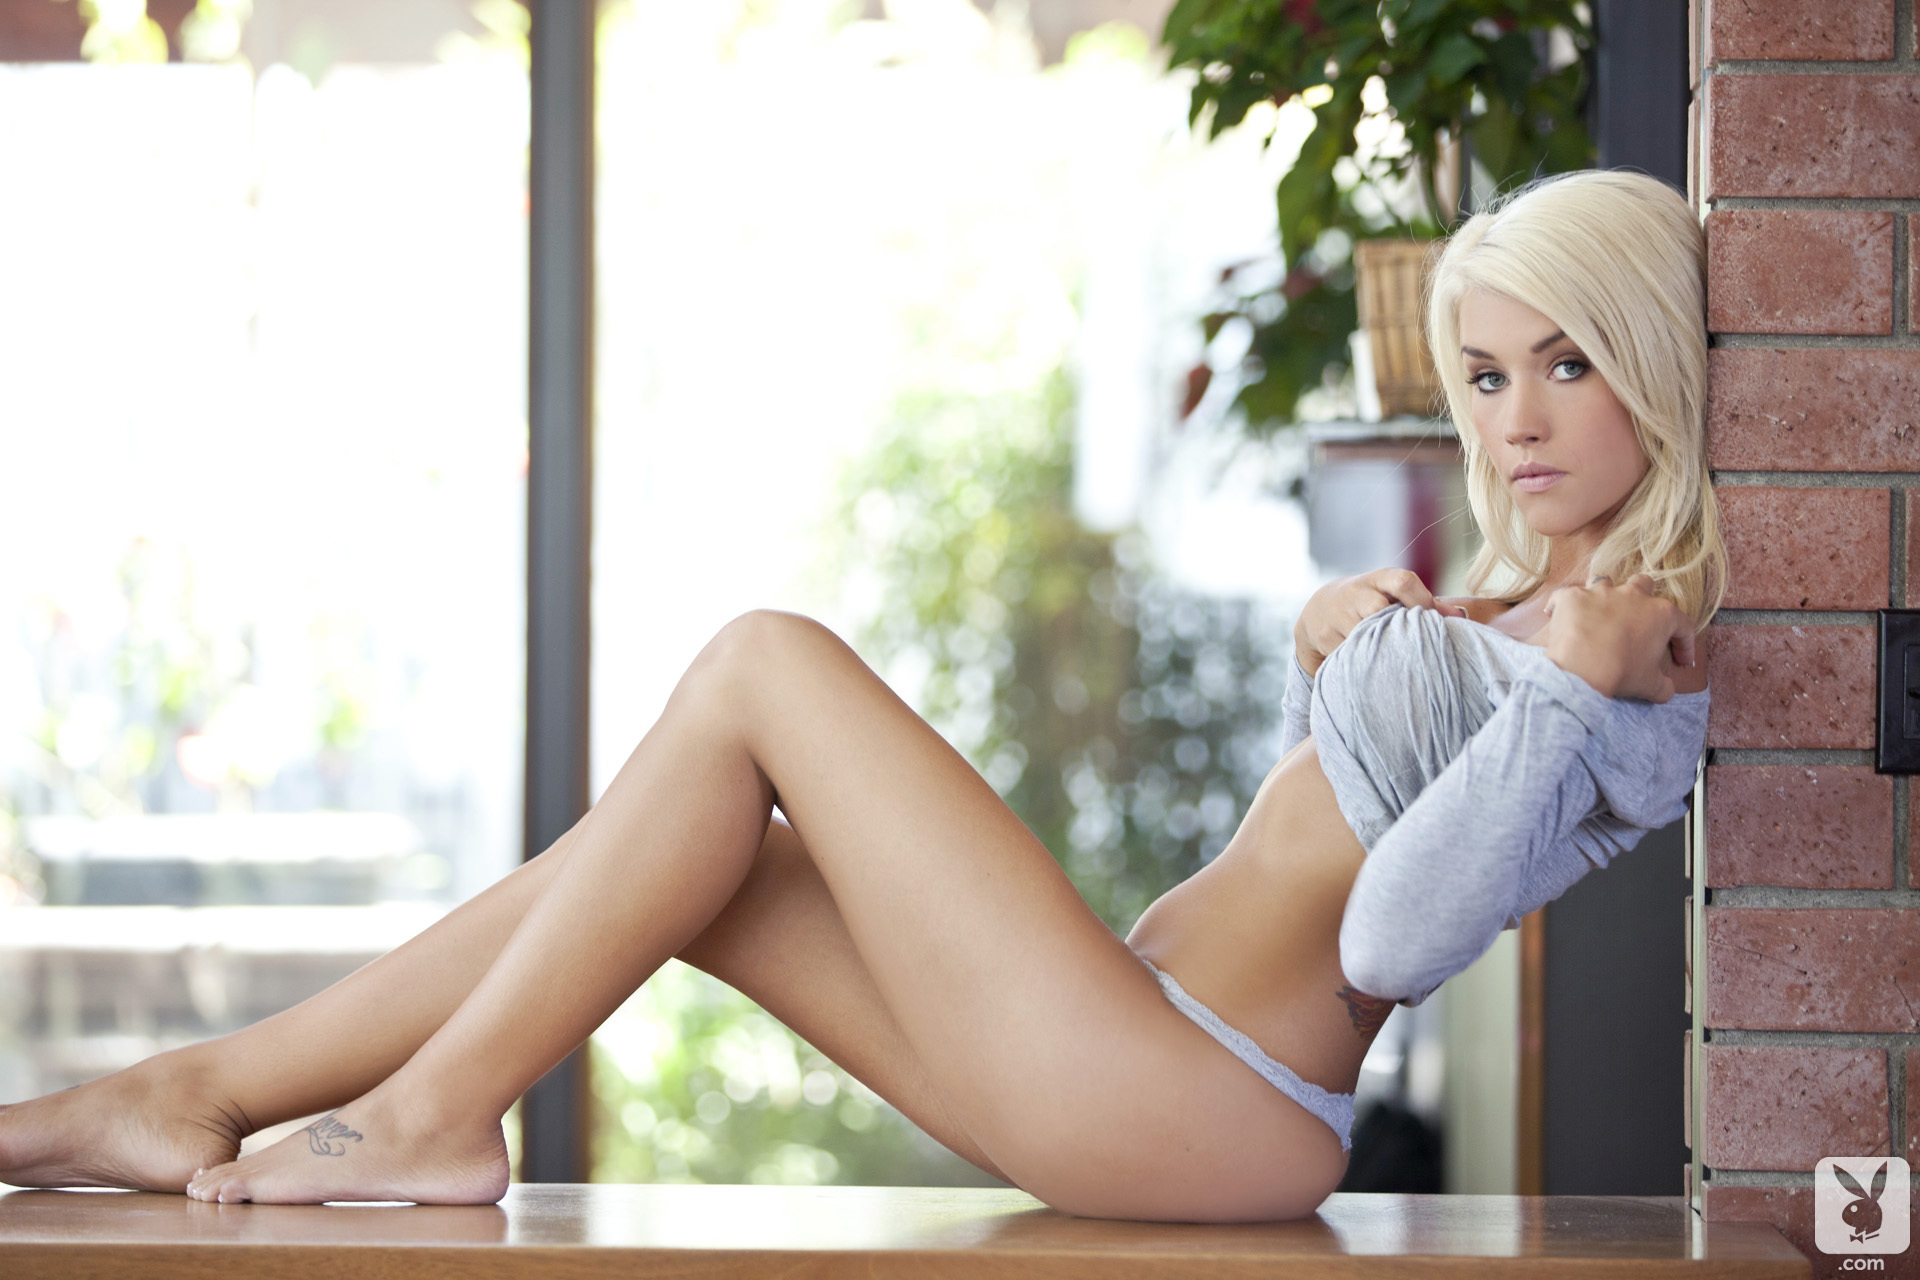 Taylor Seinturier Cybergirl Of The Month July 2012 Blonde Lust (49)